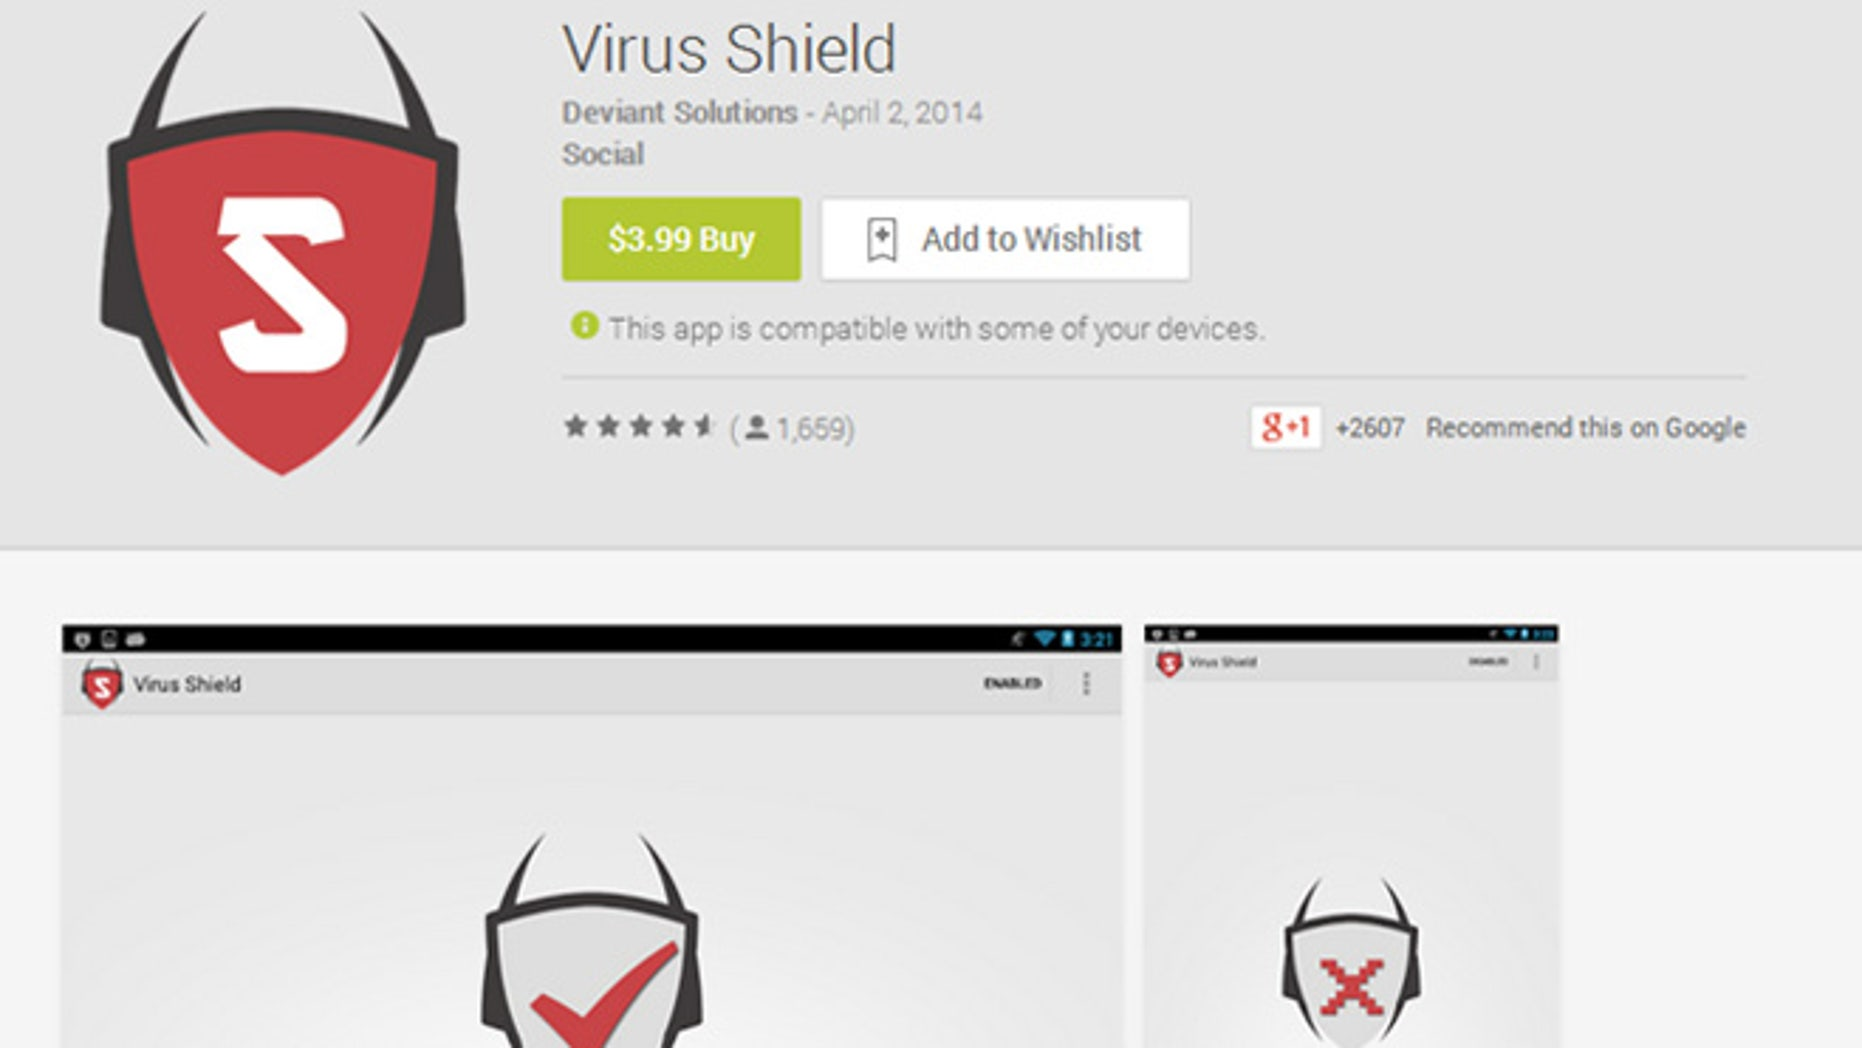 An Android security website says one of the top selling apps on Google's Play store, Virus Shield, is nothing but a fake.